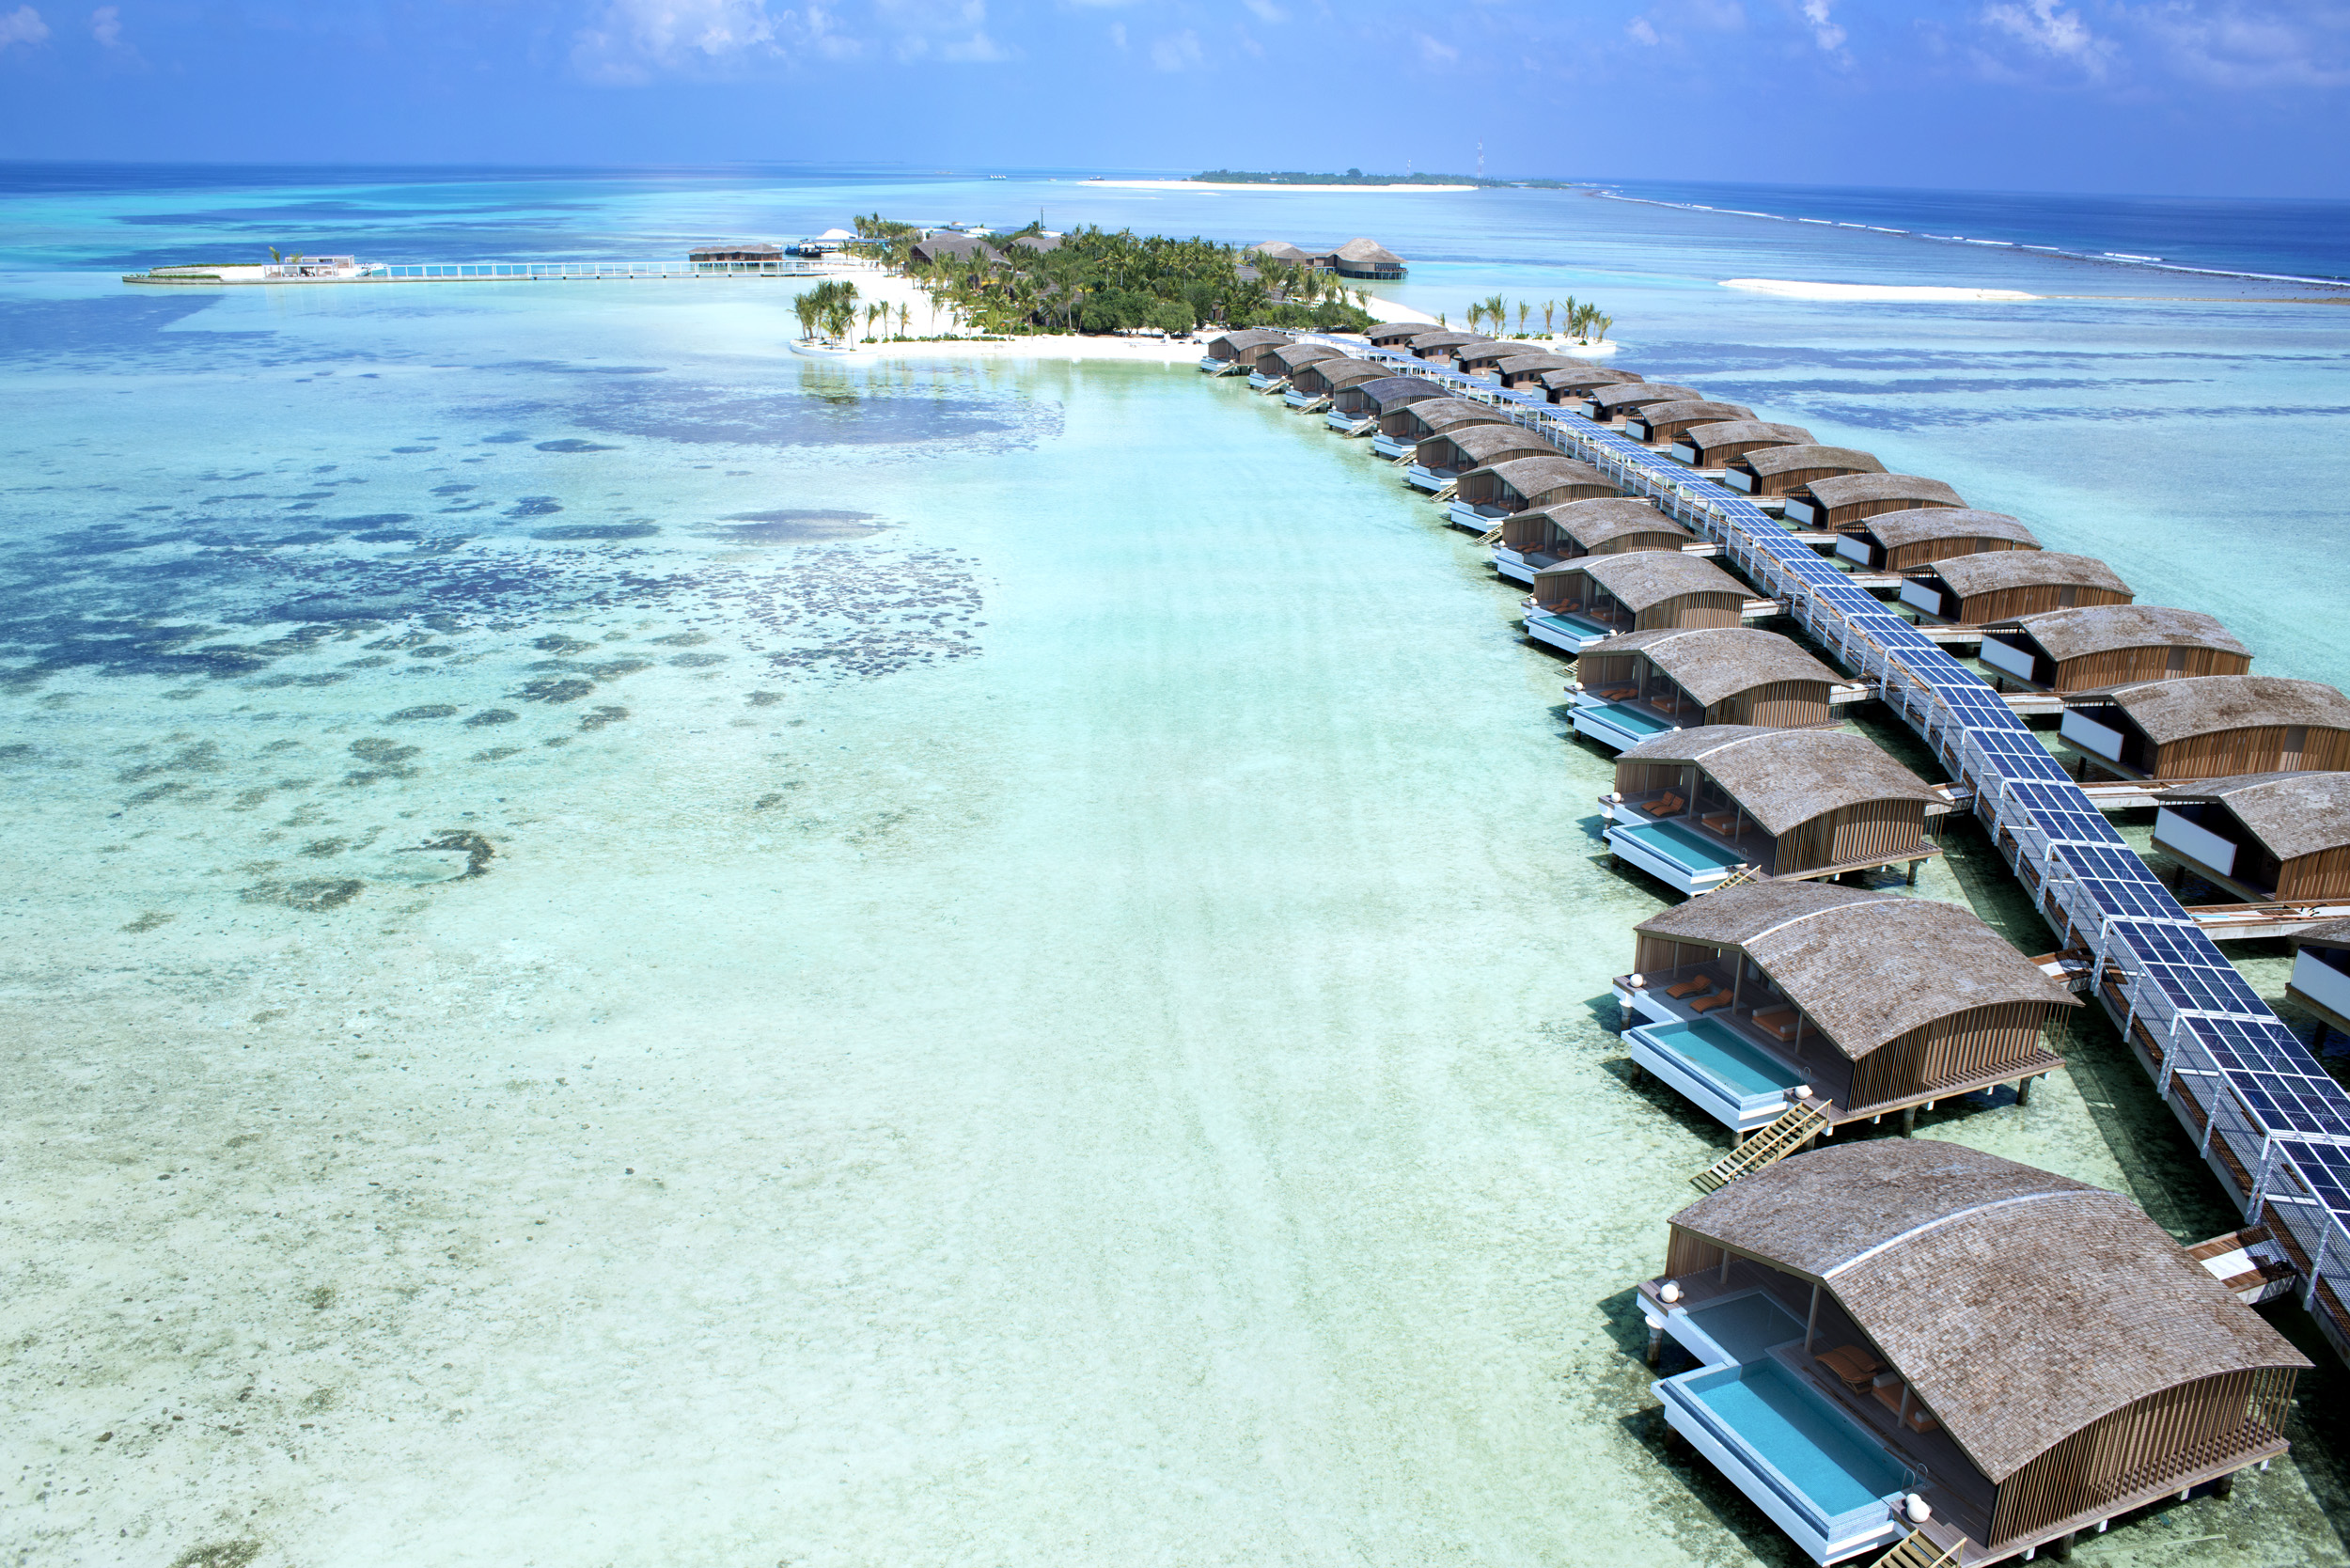 Solar-Powered Villas in Maldives (via Travel Centre Maldives)